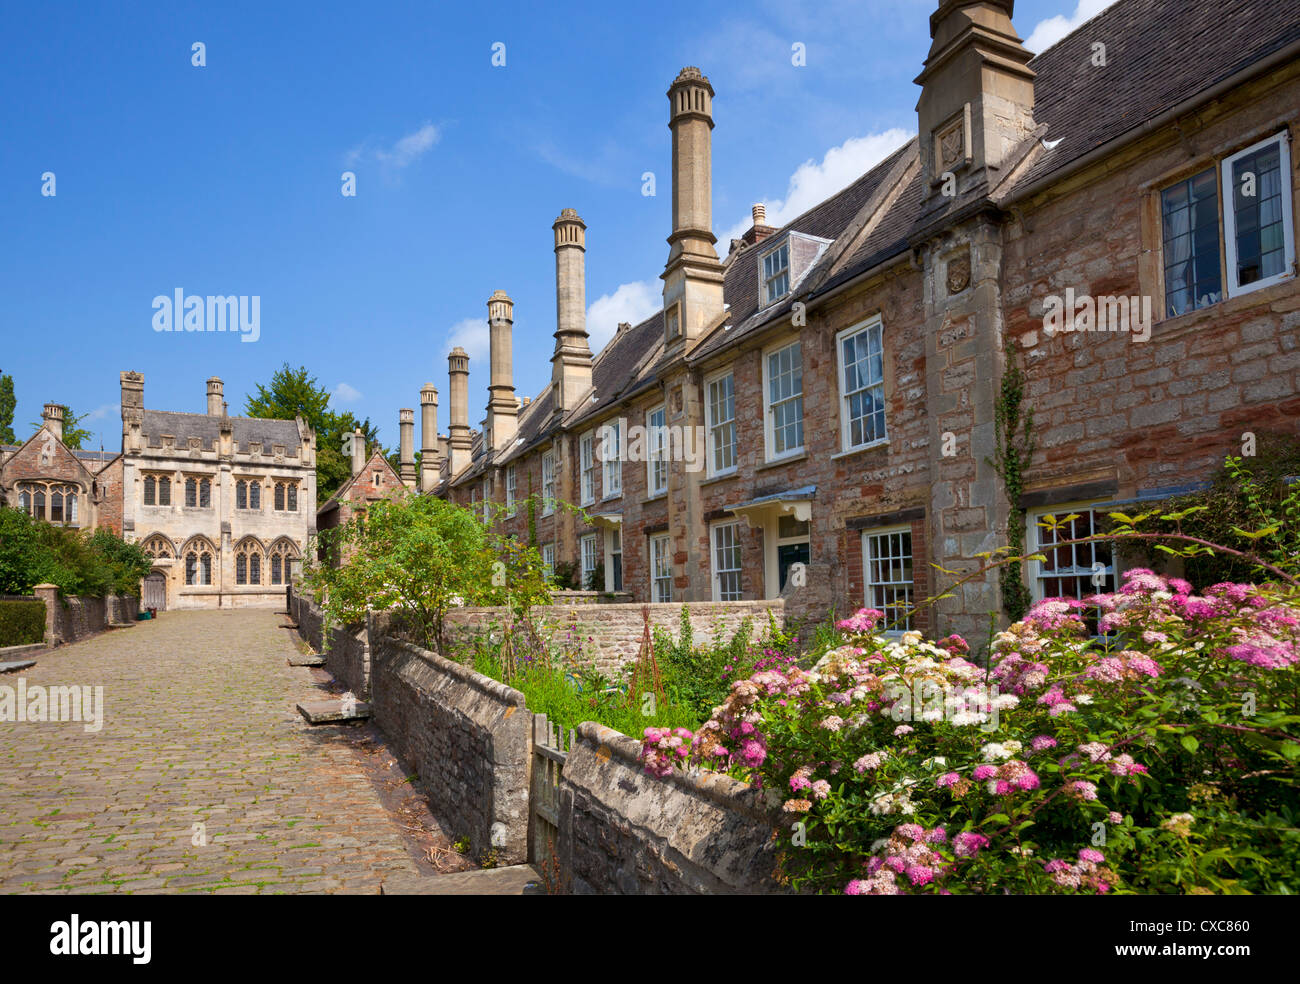 Vicar's Close, dating from the 14th century, the oldest surviving purely residential street in Europe, Wells - Stock Image